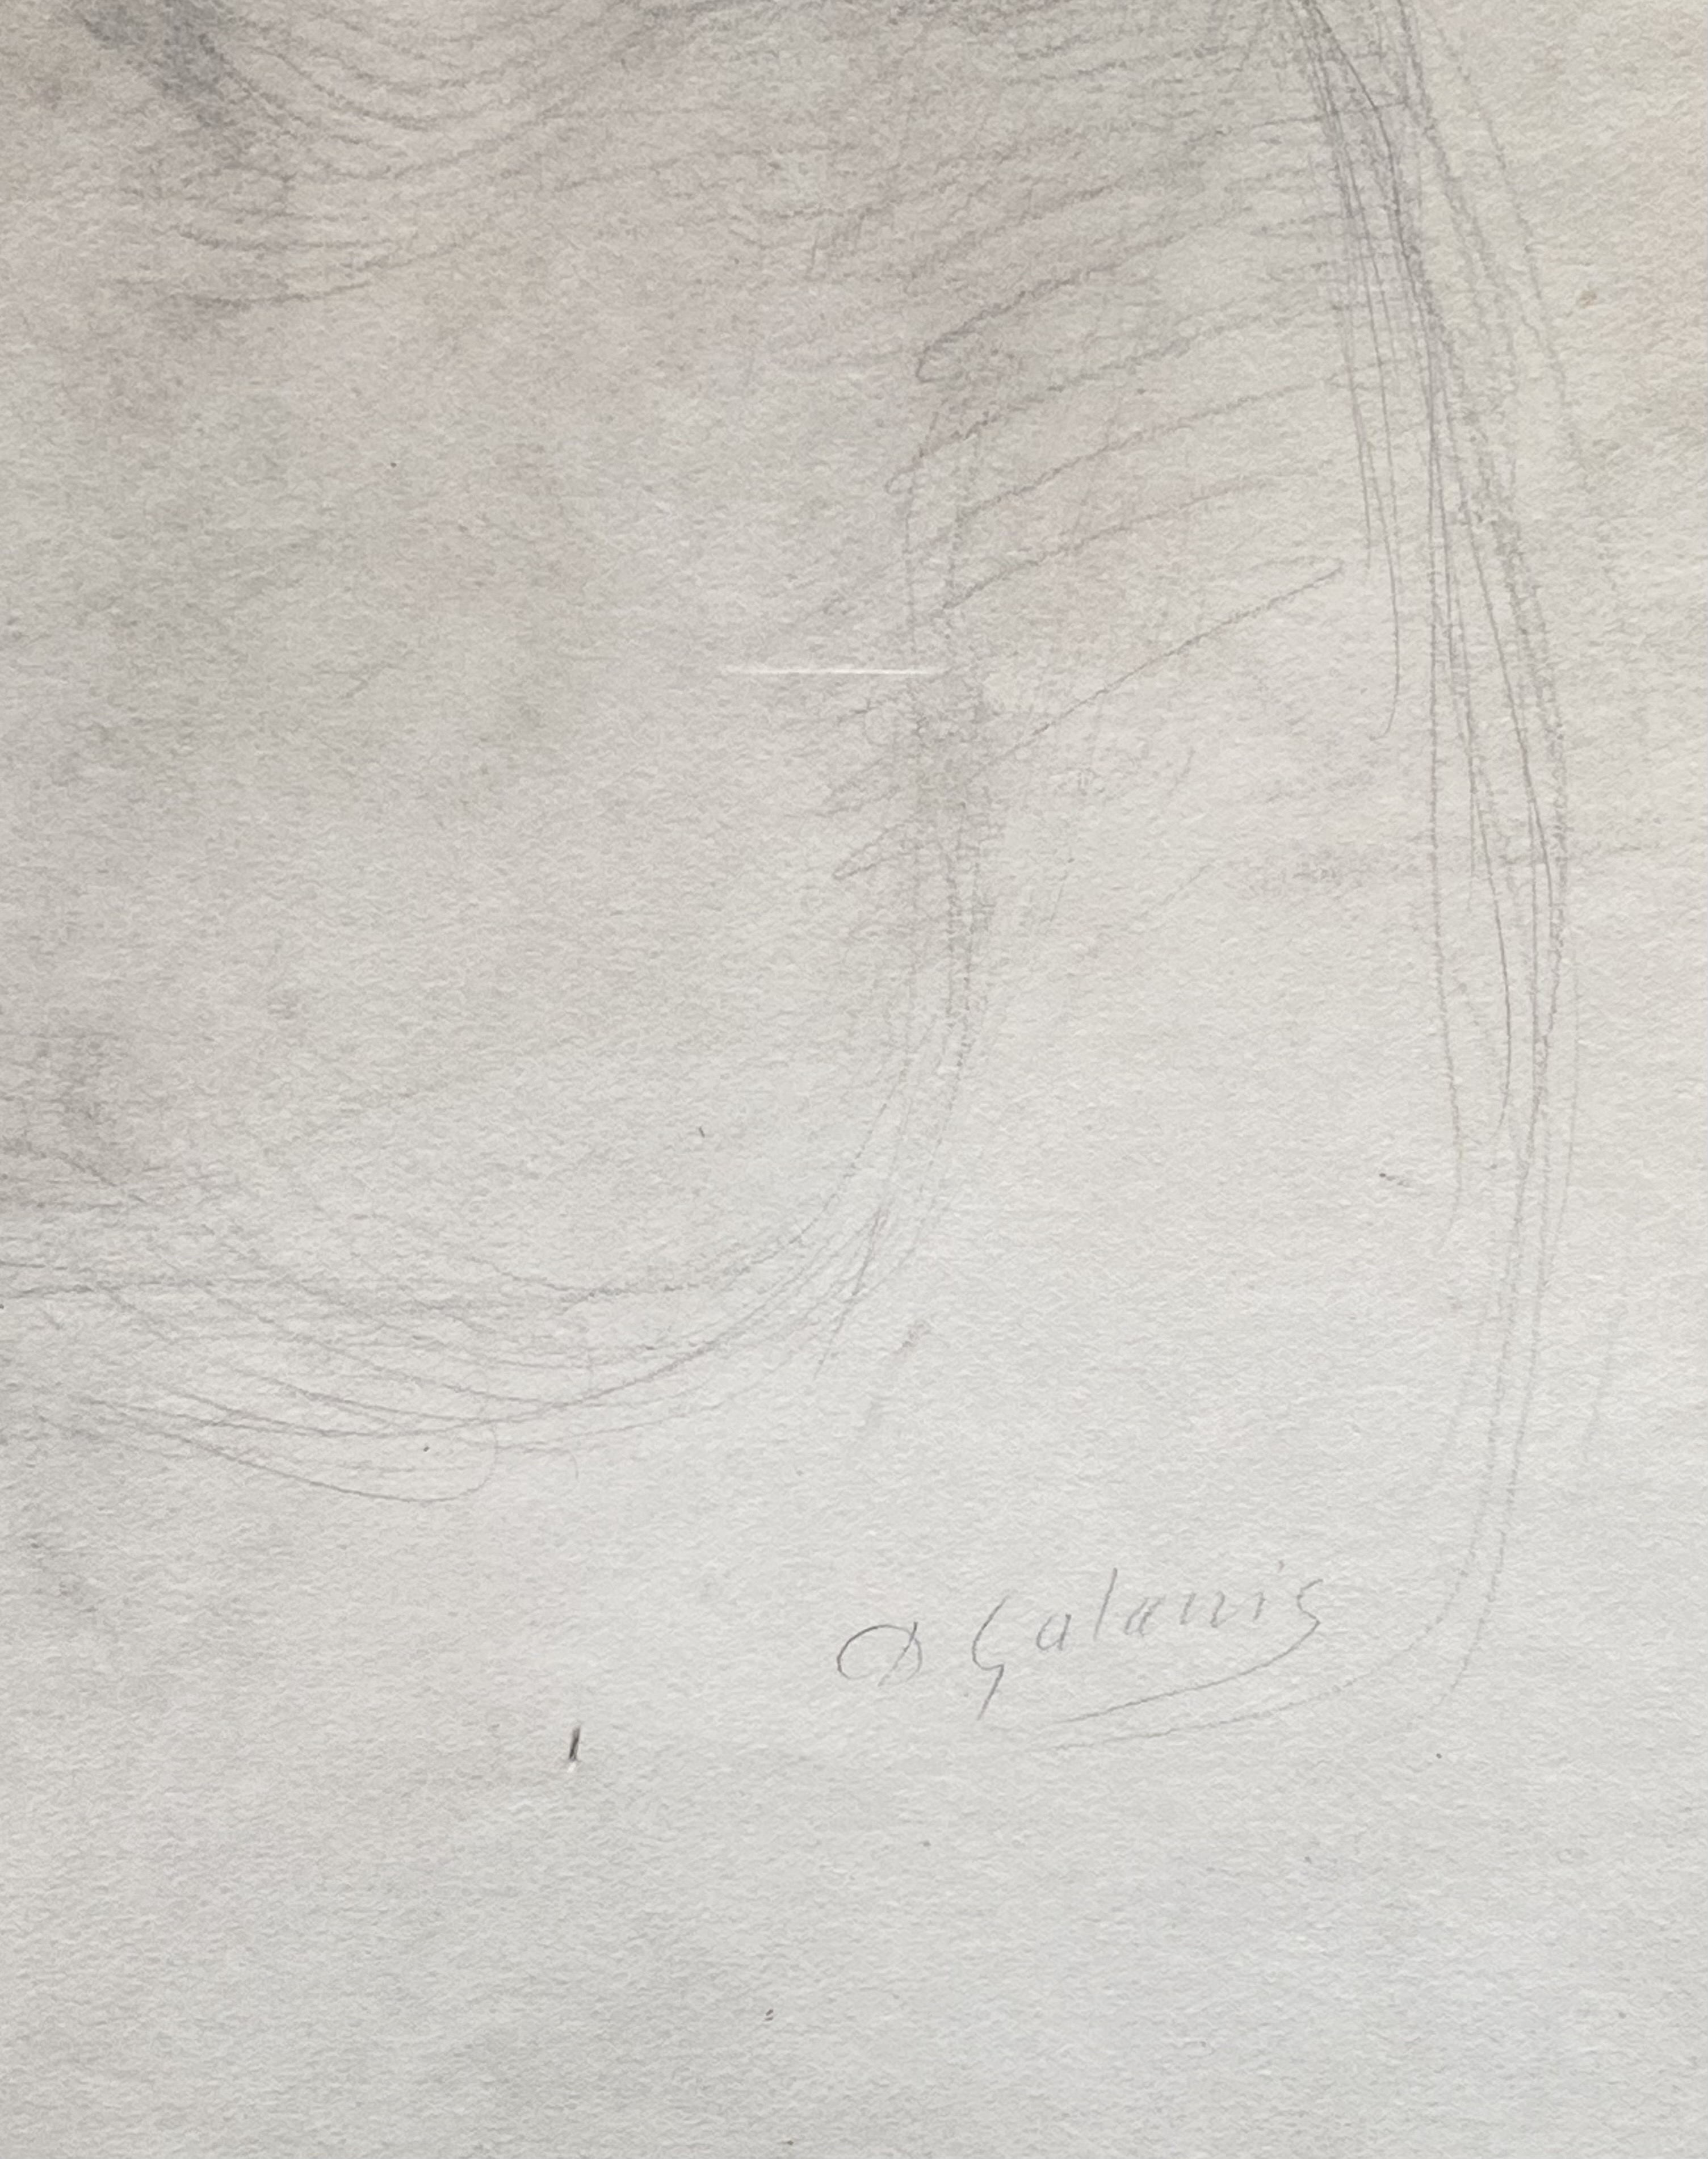 Dimitrios Galanis (Greek, 1880-1966) (AR), Portrait of a young lady, charchoal on paper, 62 x 38 cm. - Image 2 of 2